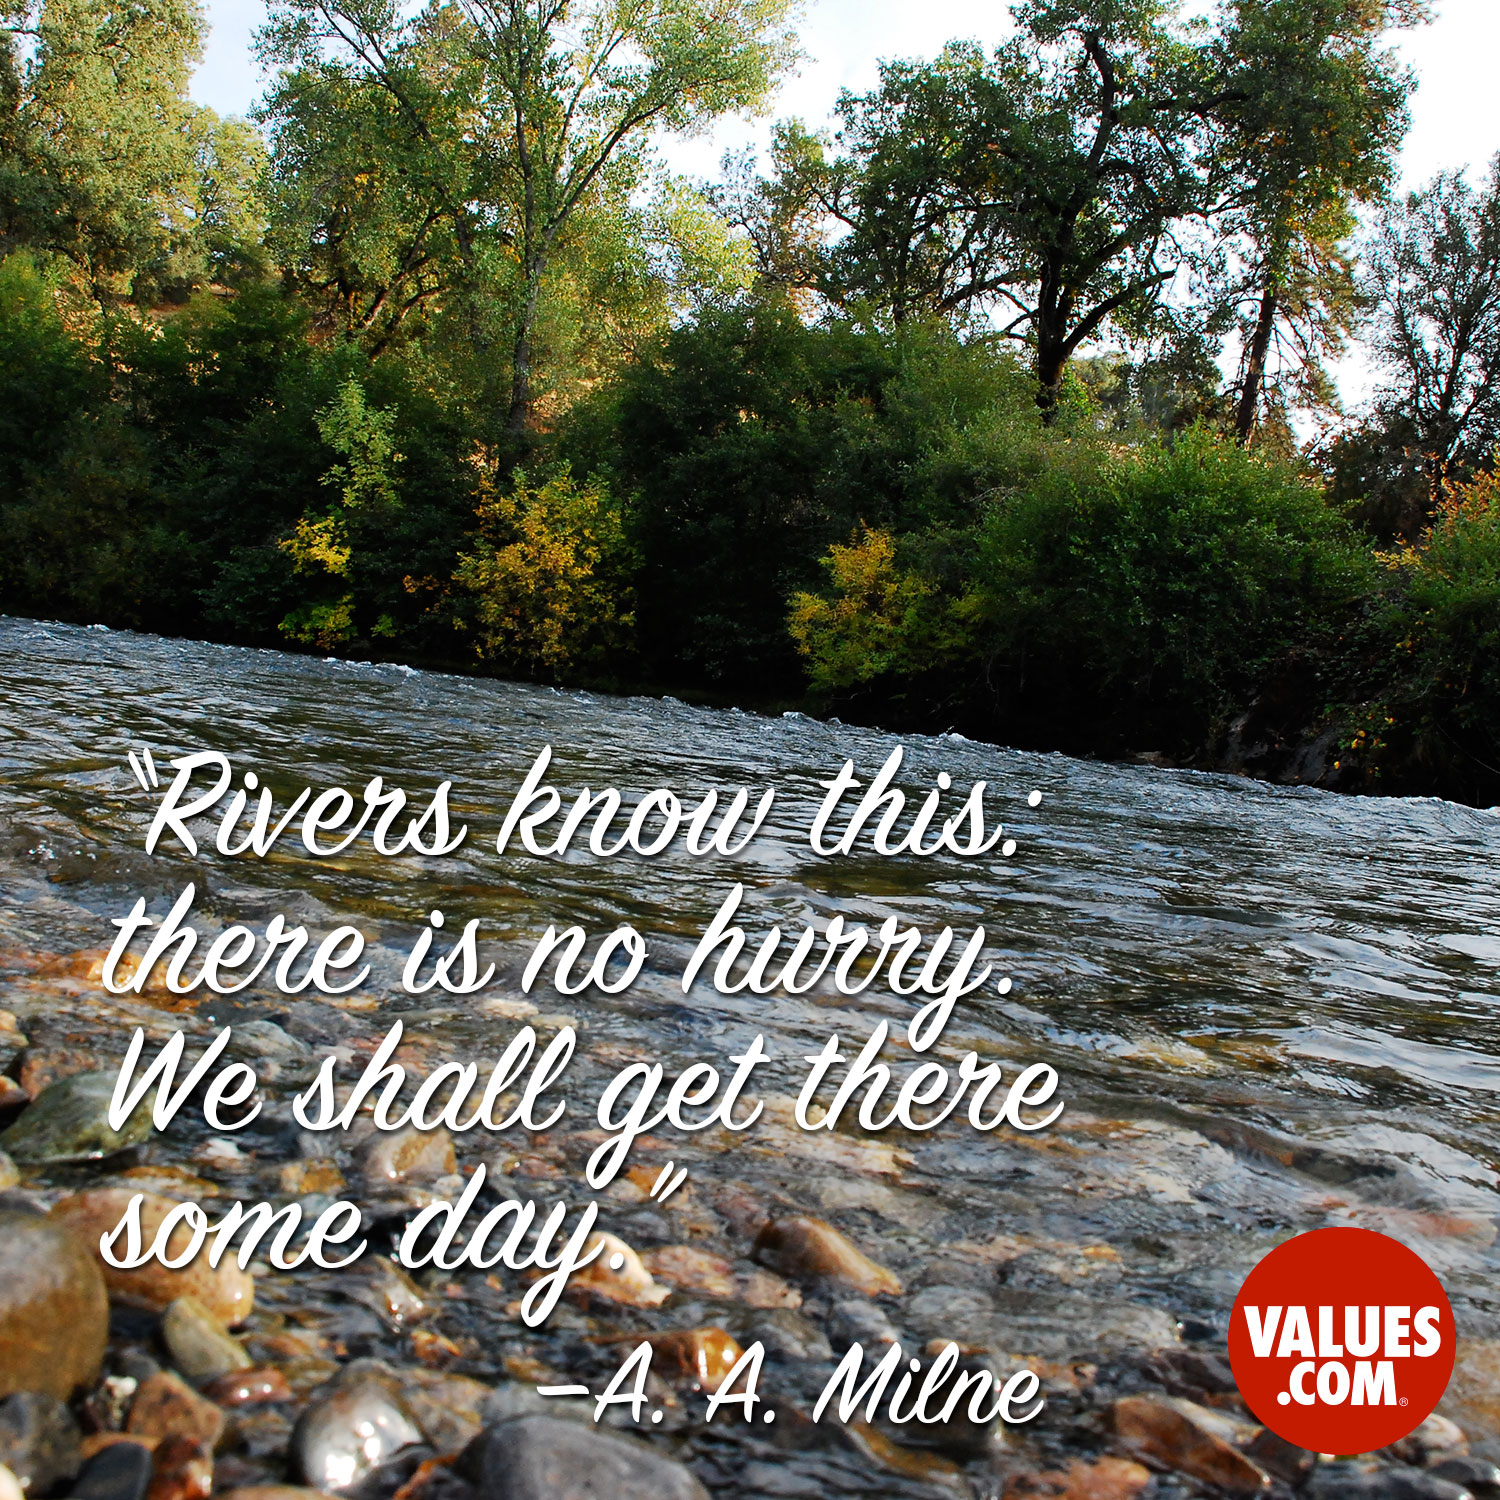 Rivers know this: there is no hurry. We shall get there some day. —A. A. Milne